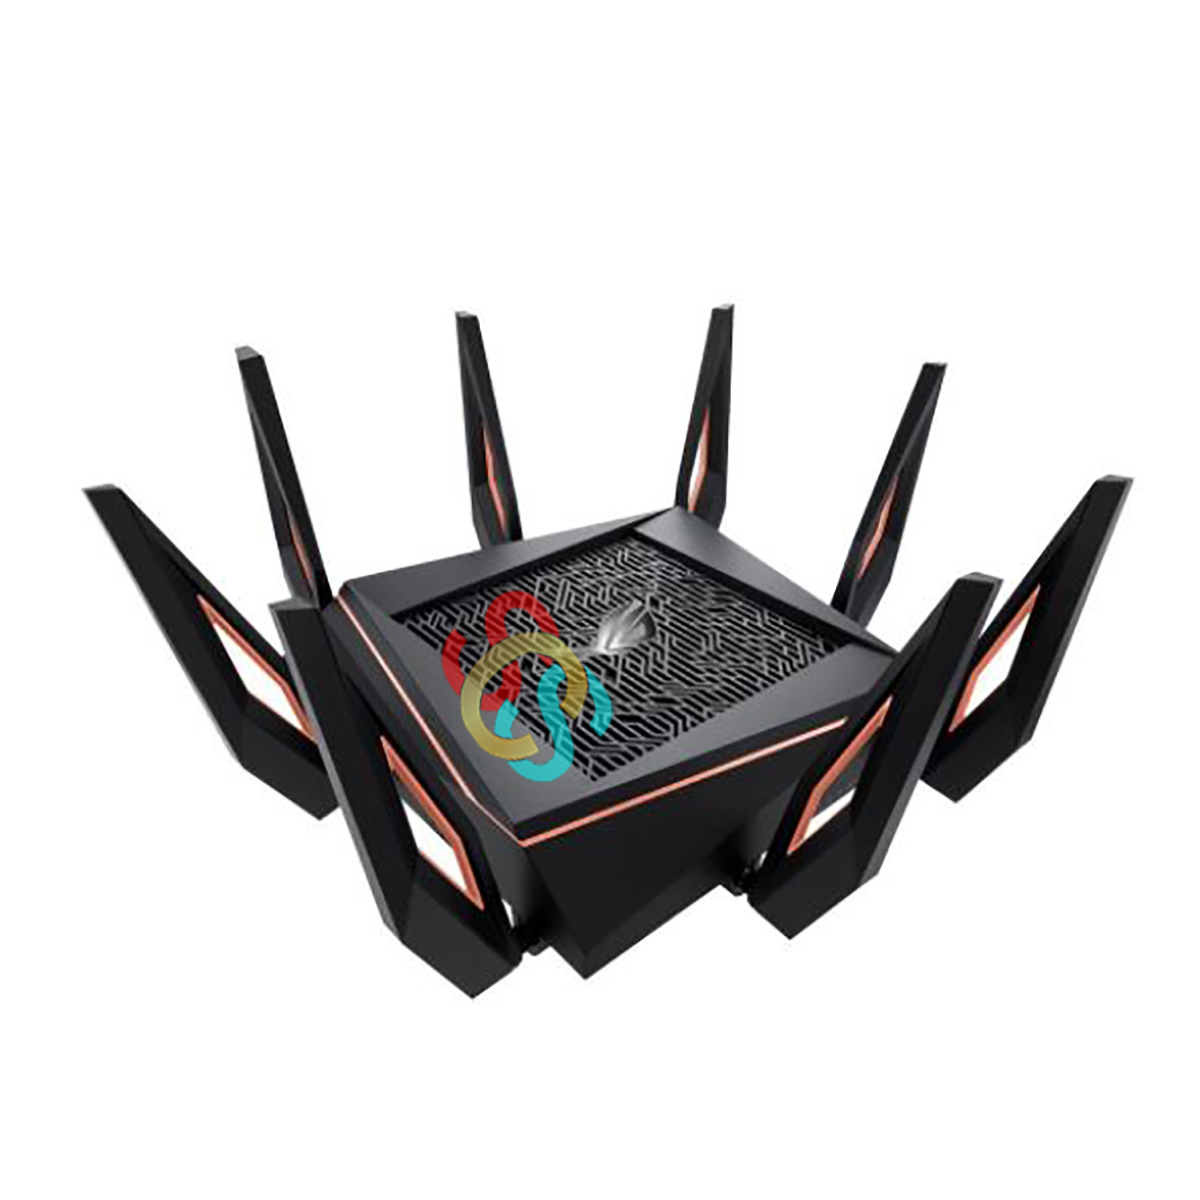 Asus GT-AX11000 AX11000 Mbps 3G/4G & Gigabit Tri-Band Wi-Fi Router